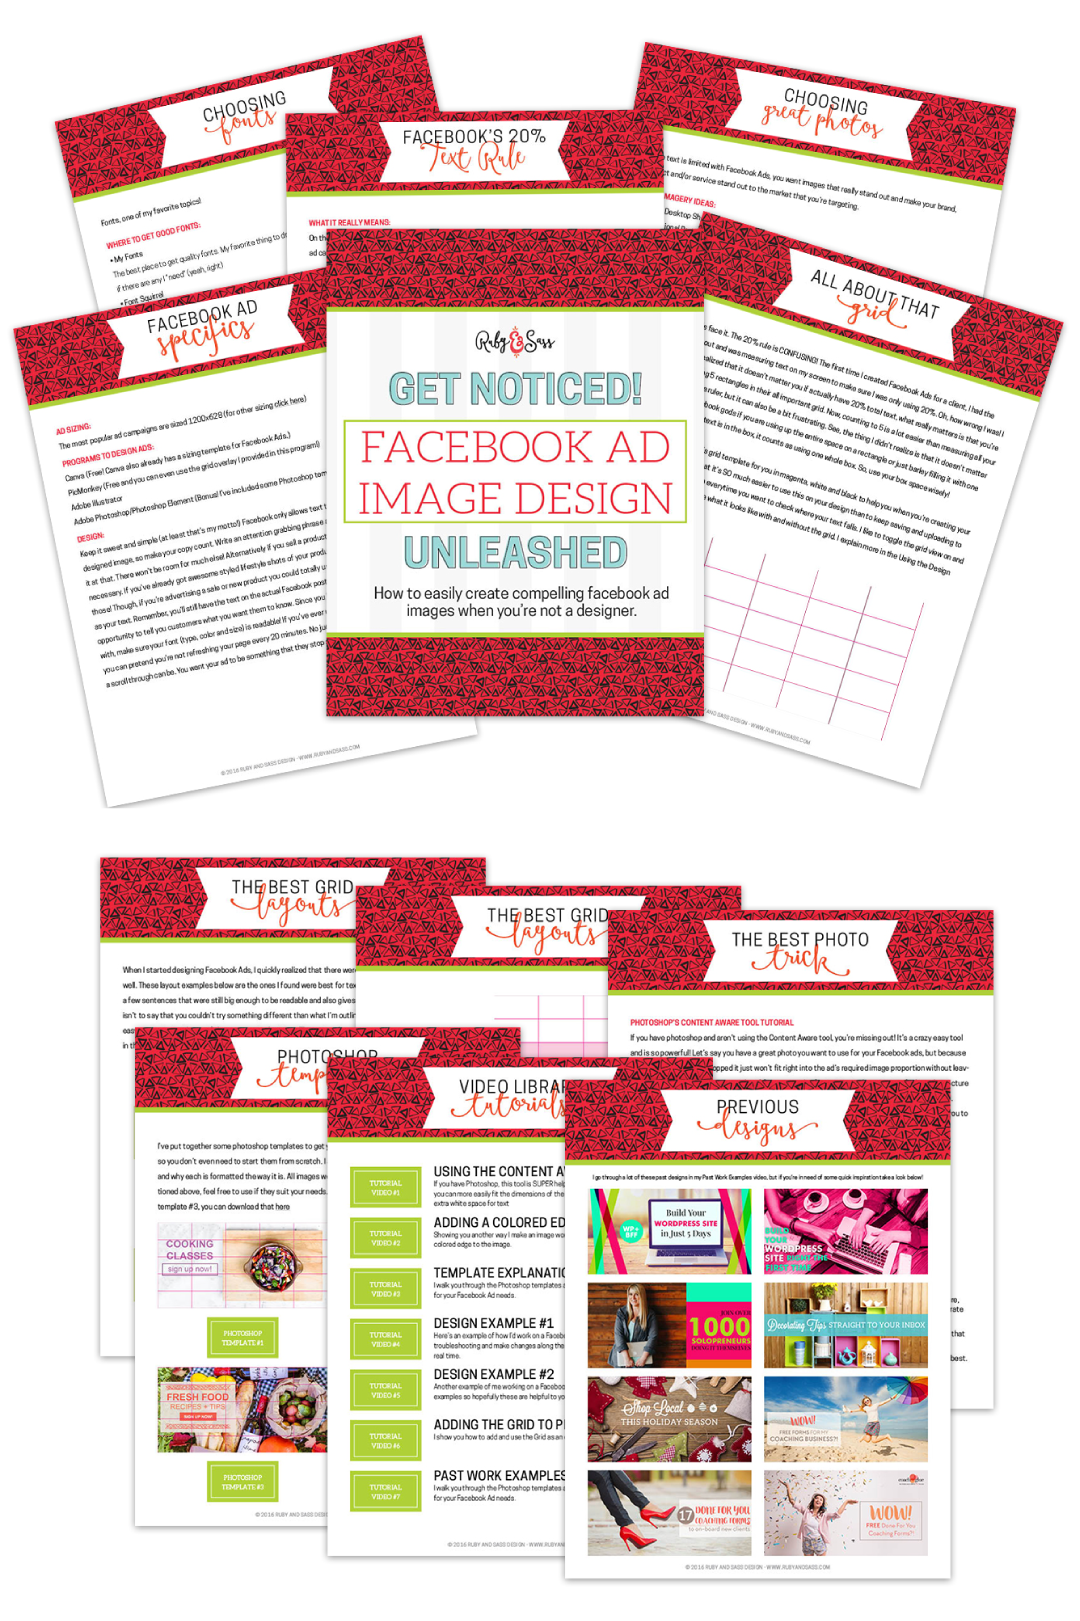 Facebood Ad Design Guide Ebook